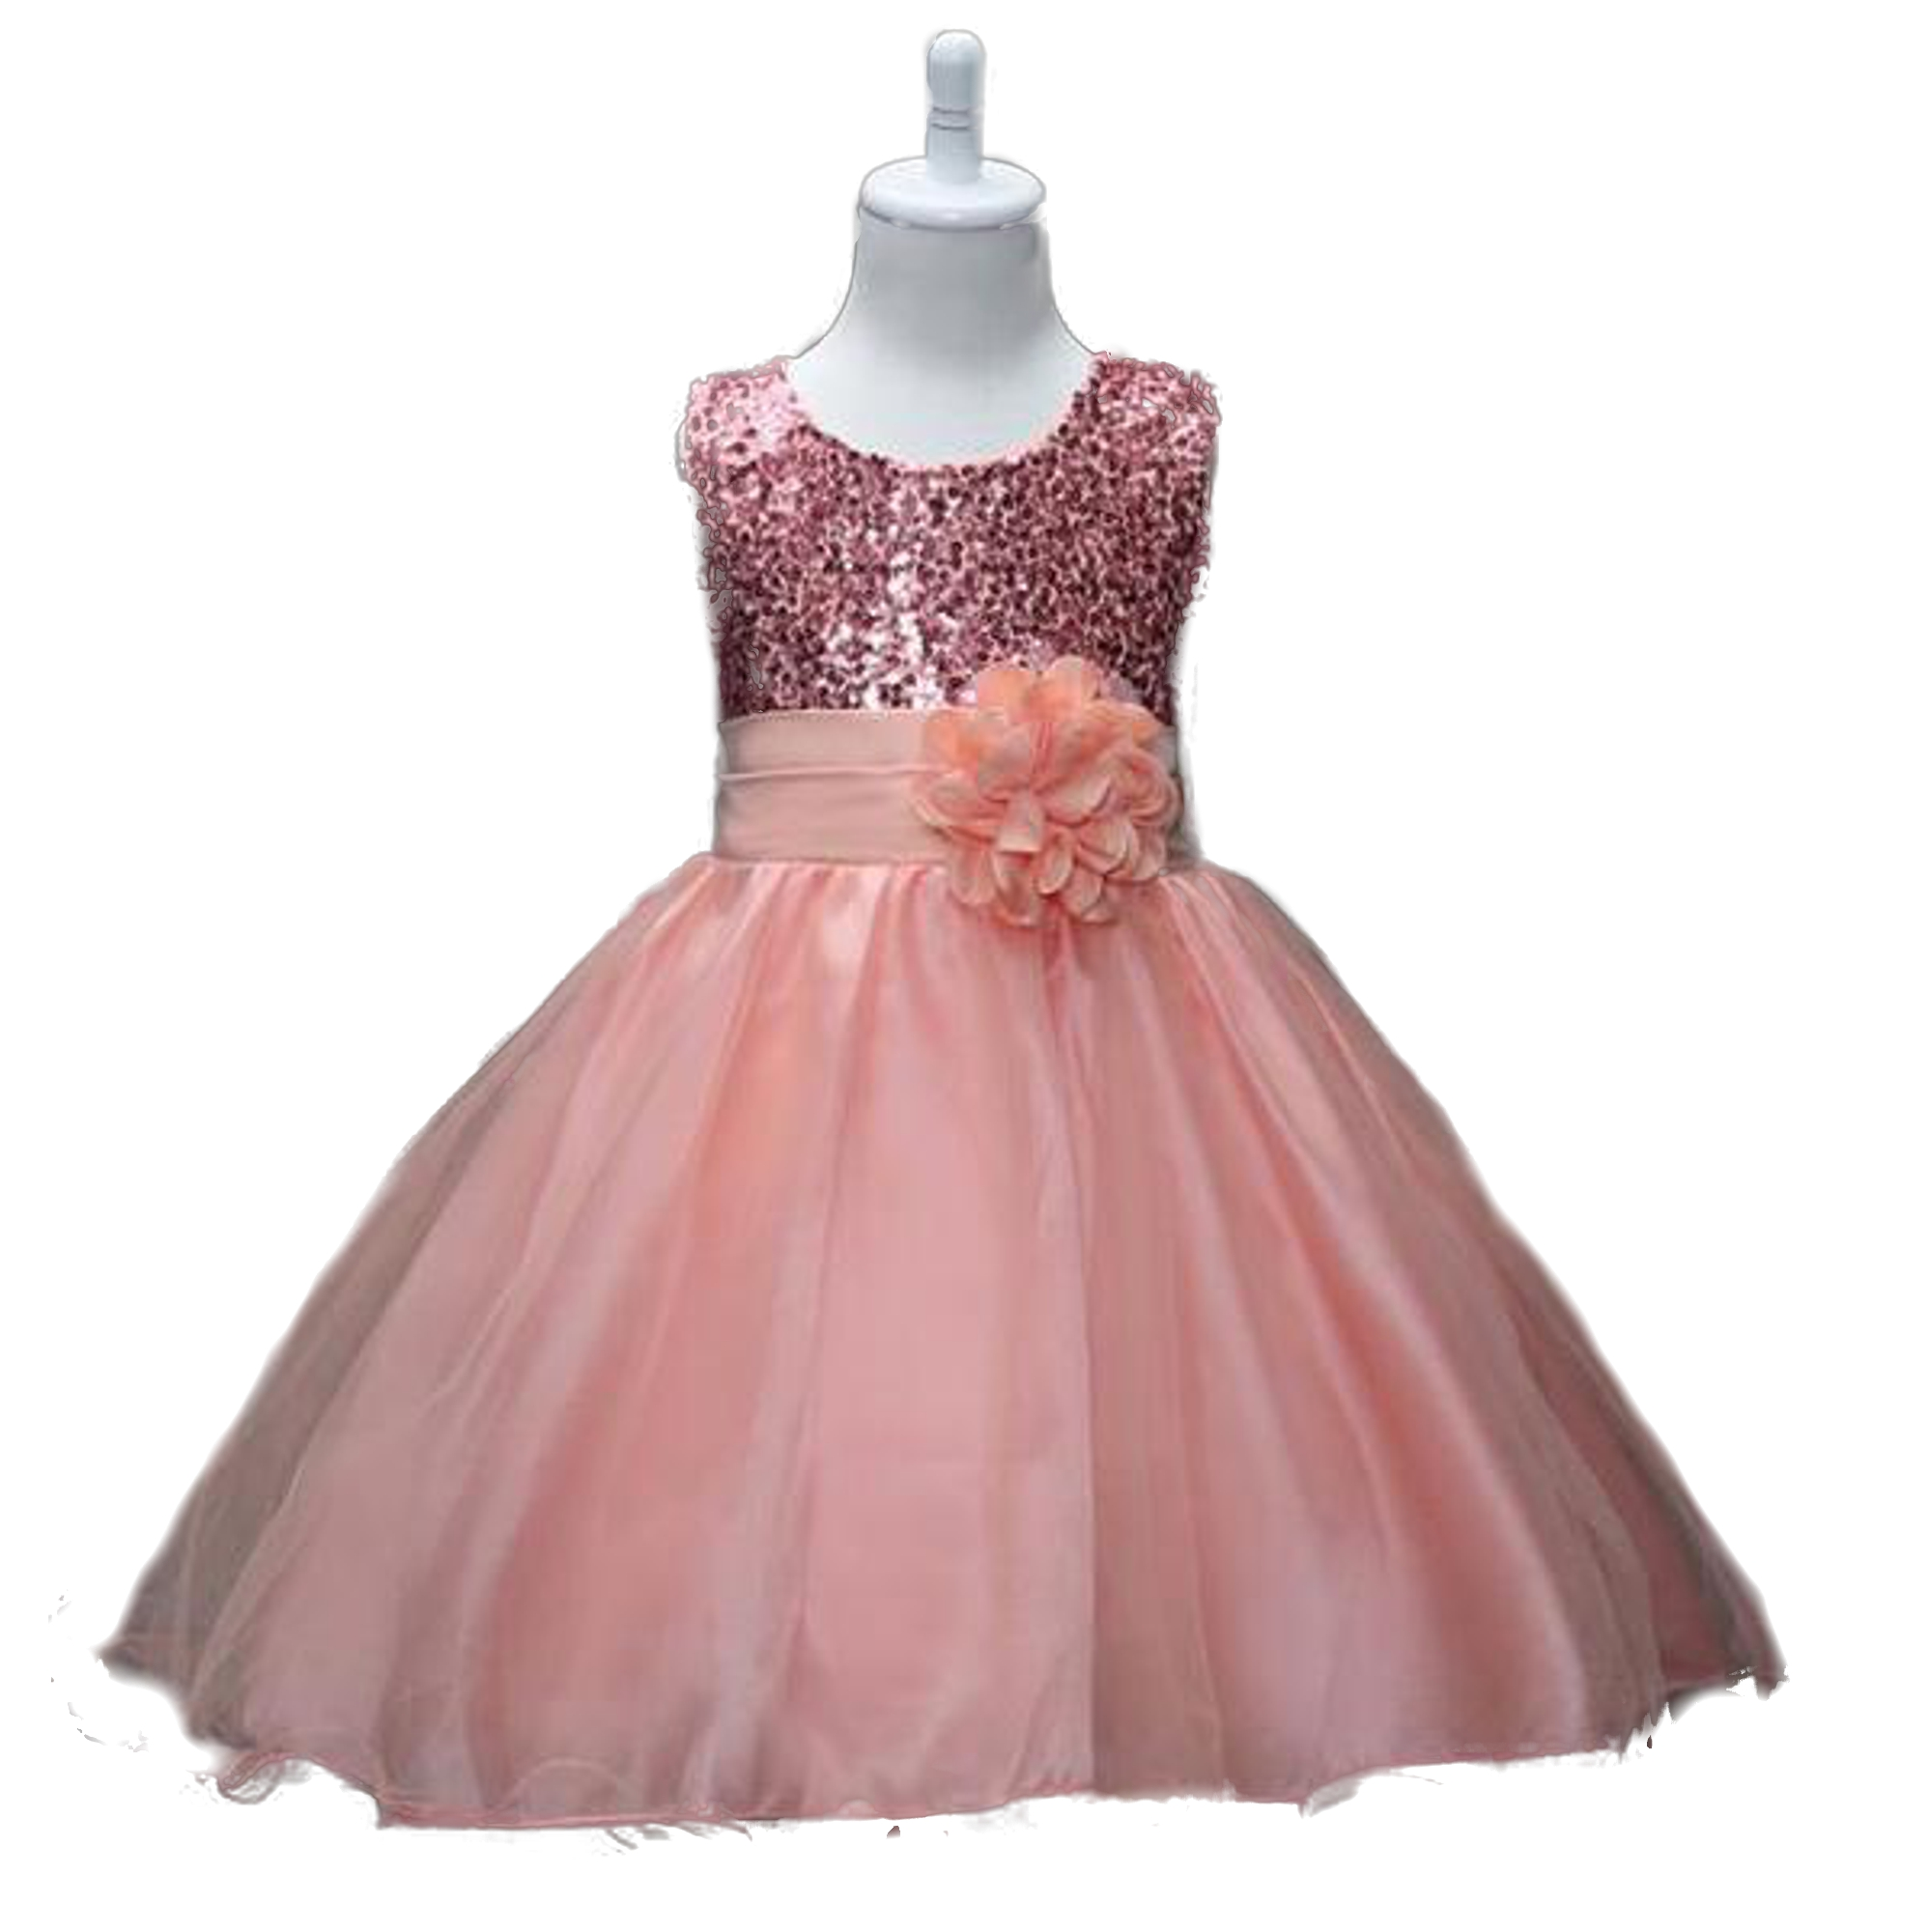 F019 Sequin And Sparkle Flowergirl Dress Rose Gold Apricot Snow